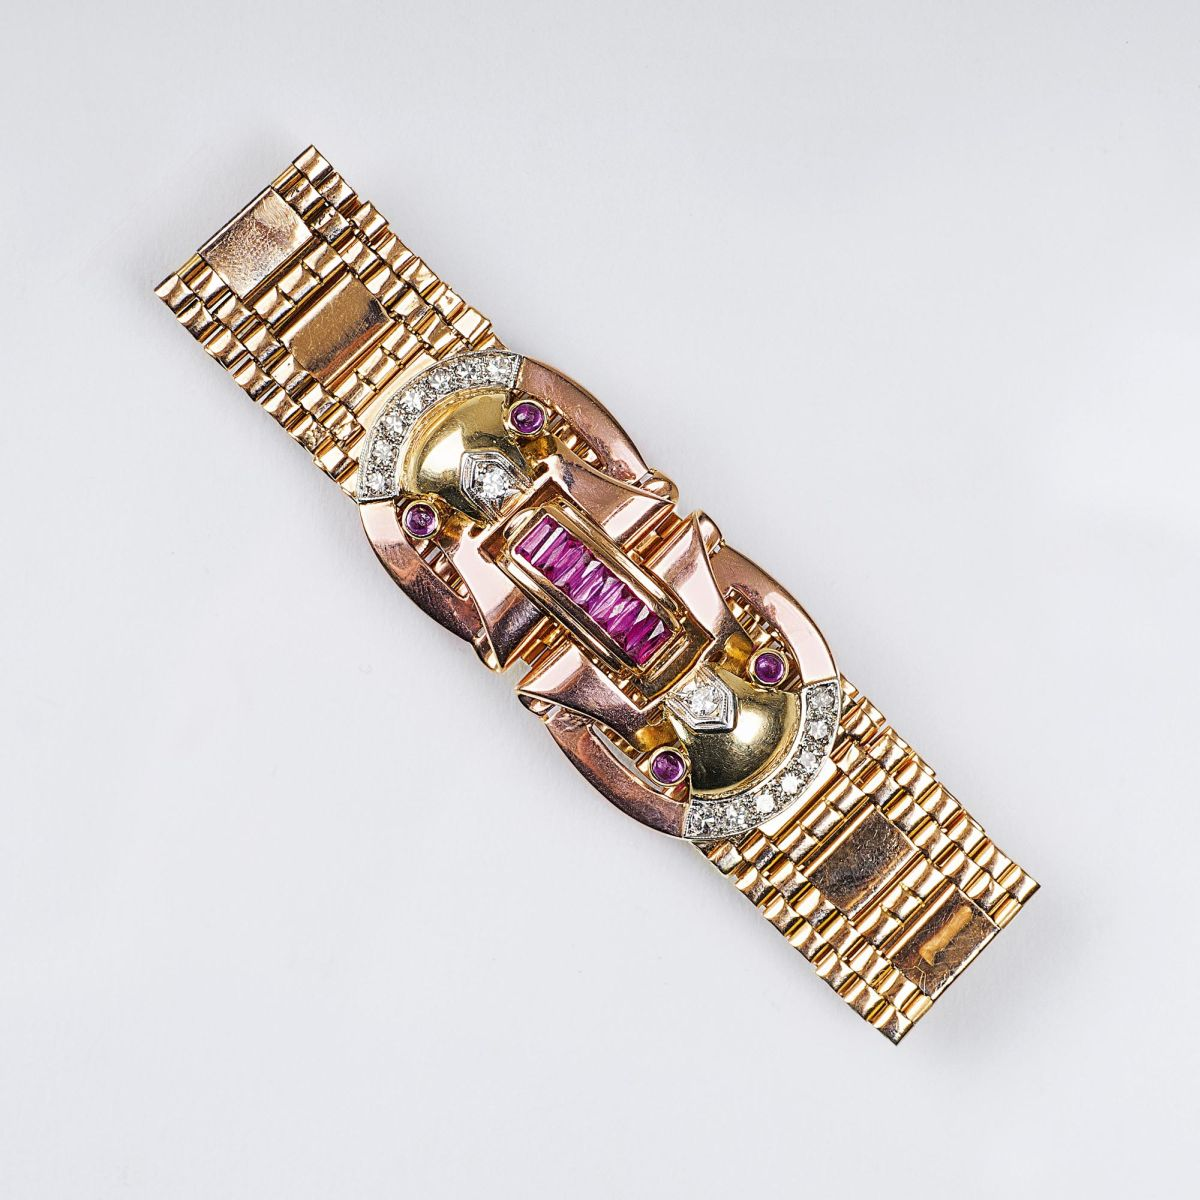 A Gold Bracelet in Art-déco Design